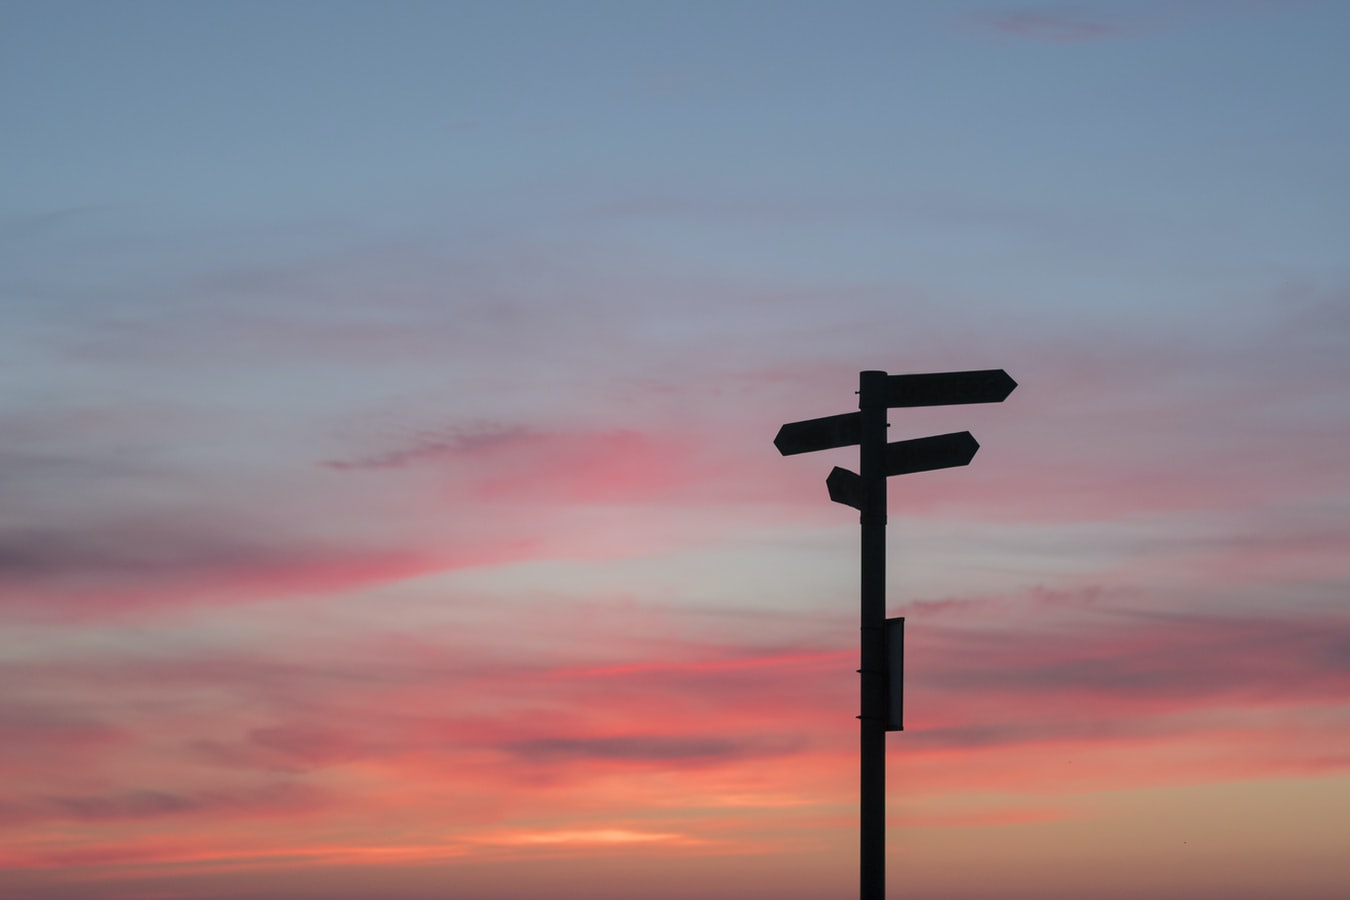 Signpost at sunset